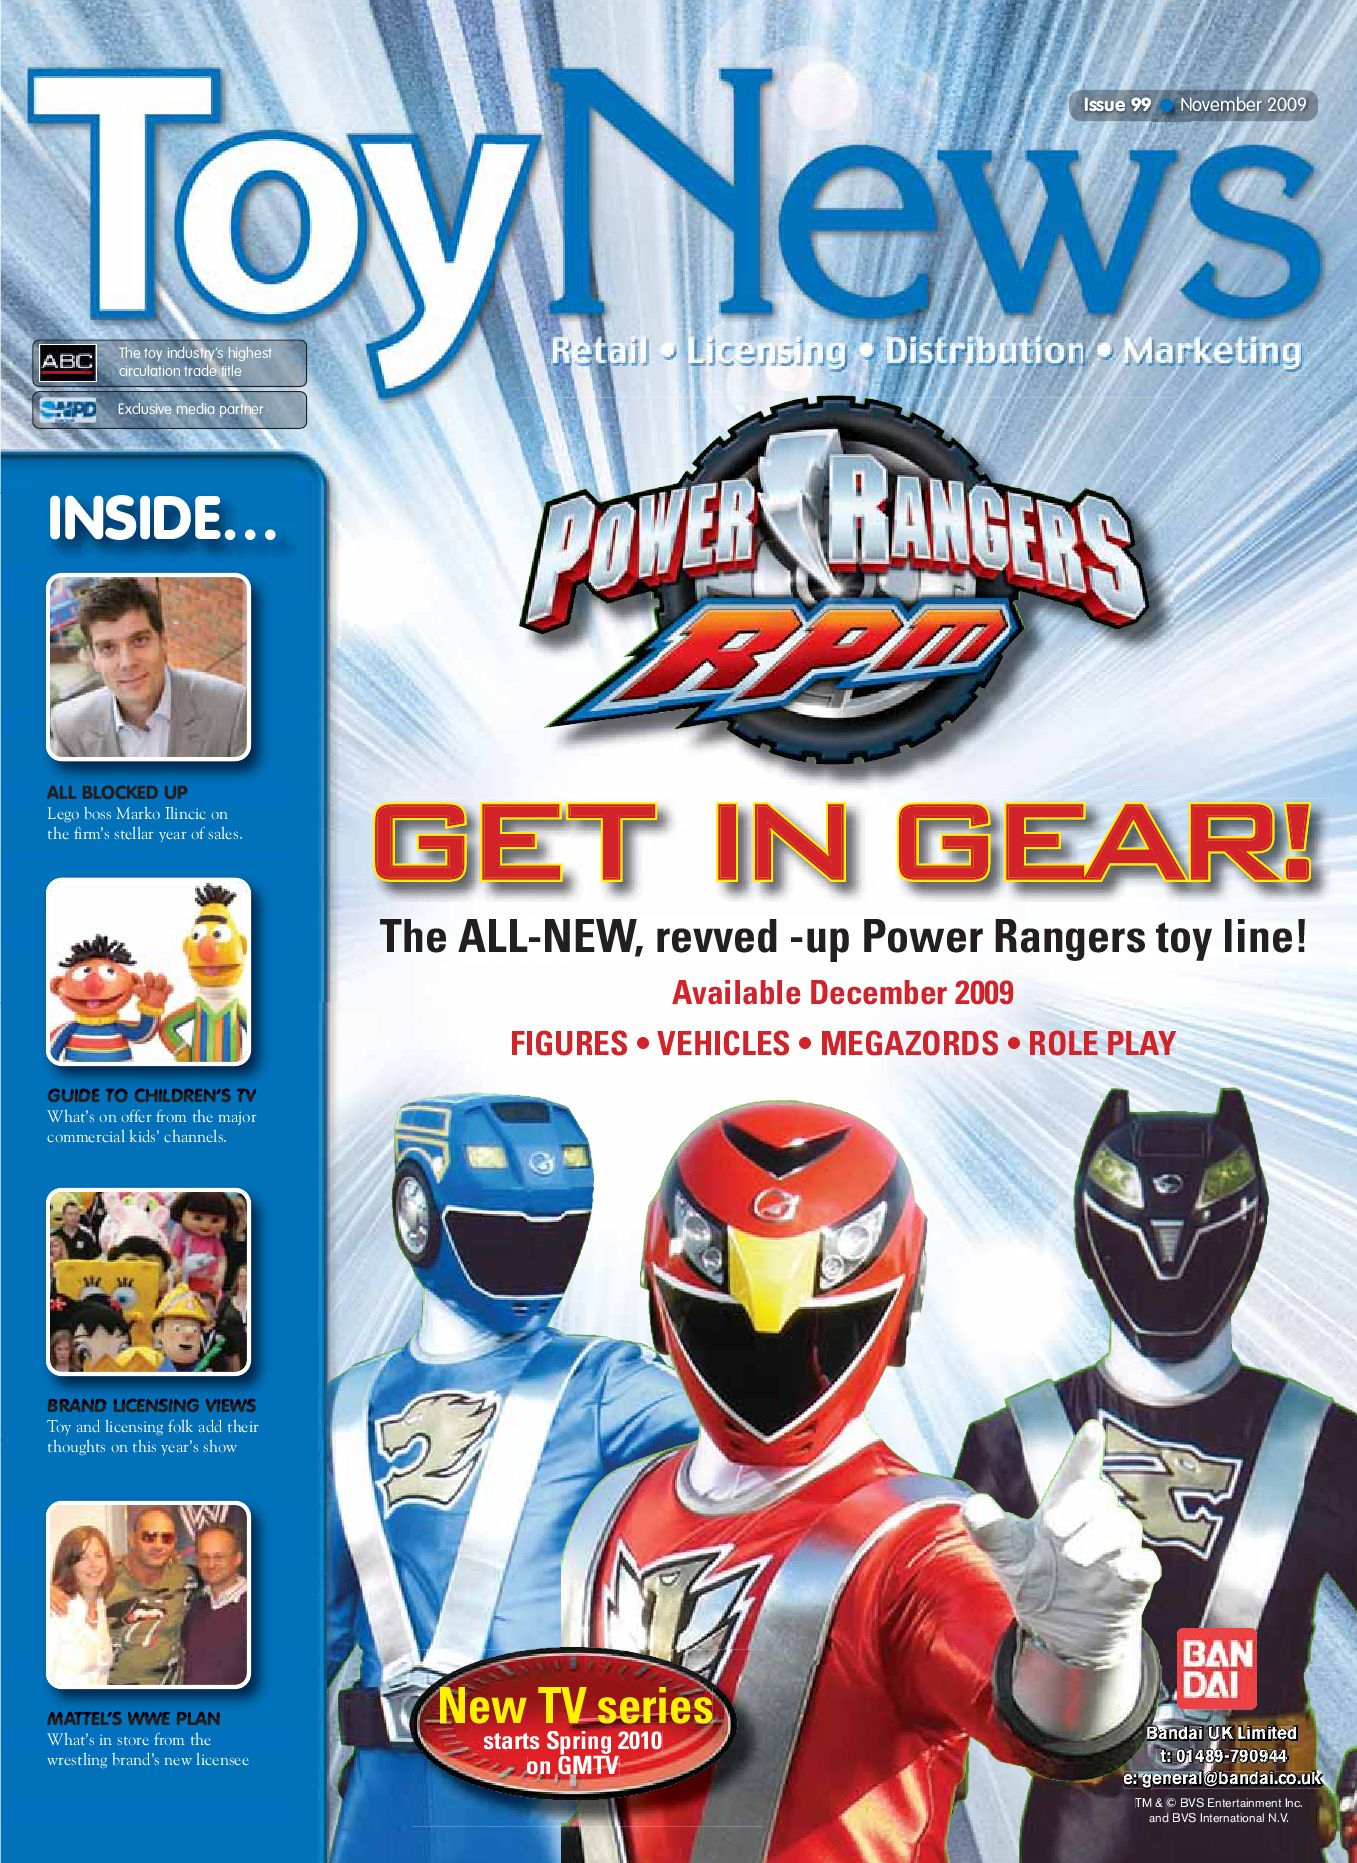 ToyNews Issue 99 November 2009 By Intent Media Now Newbay Europe